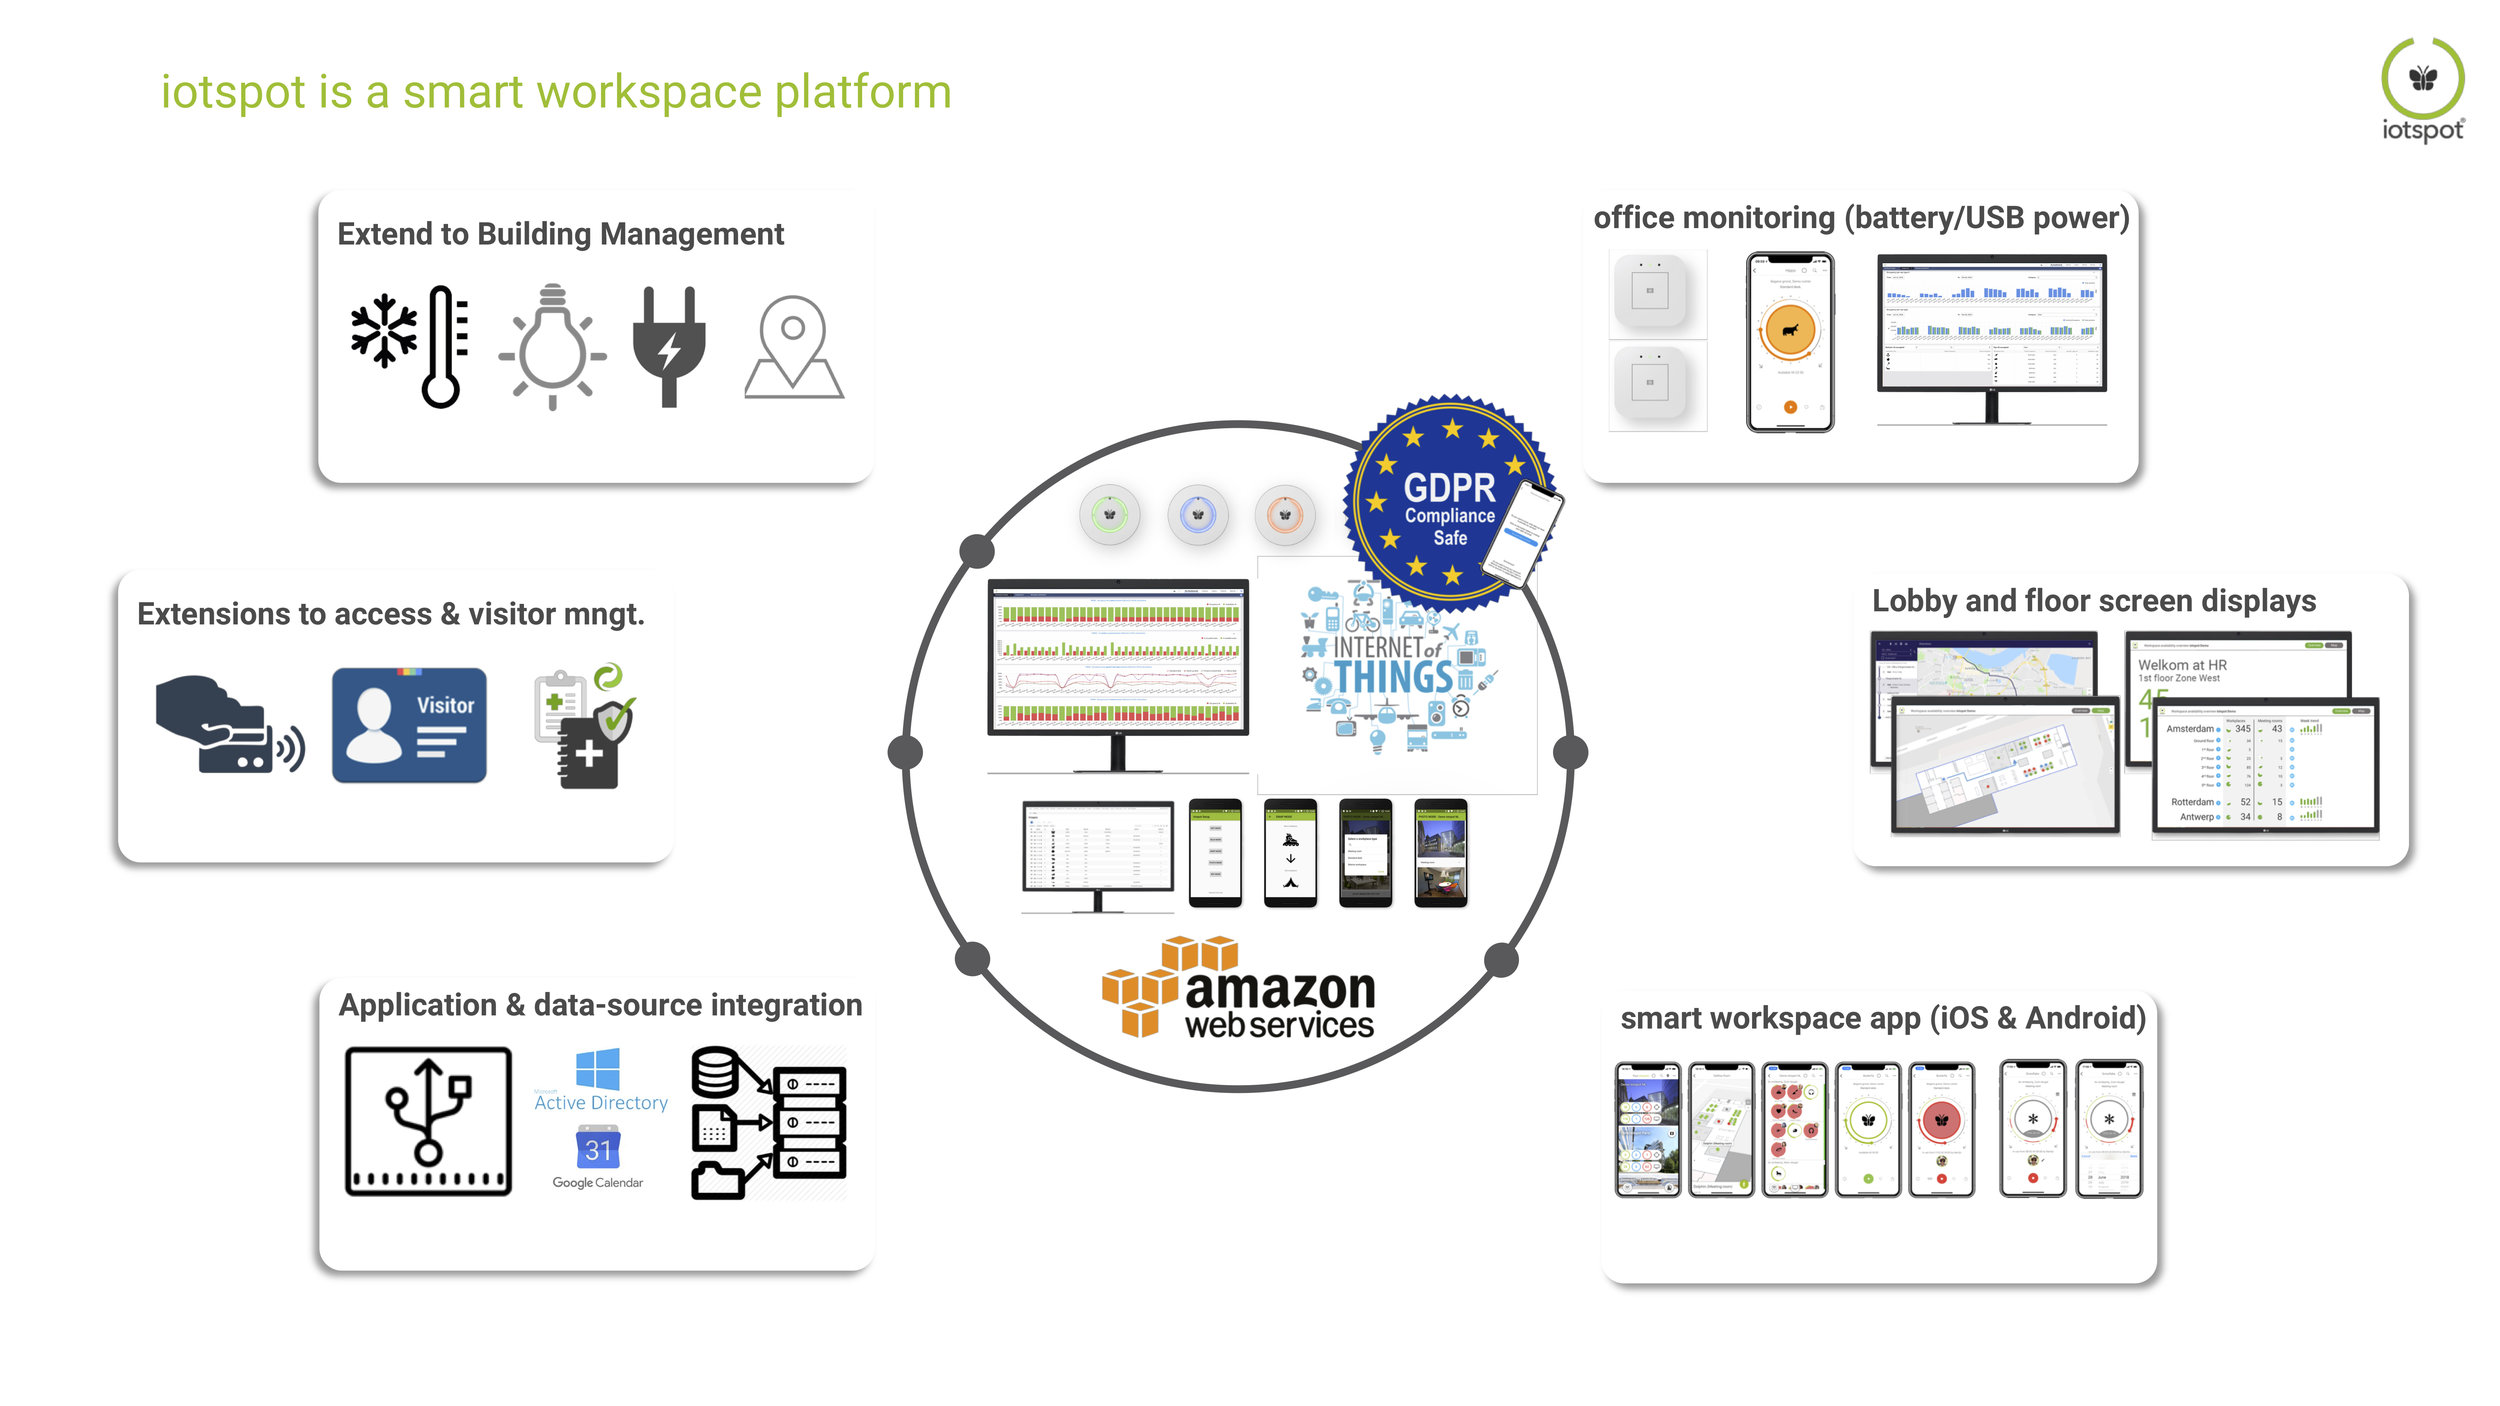 QRG iotspot is a smart workspace platform.jpg